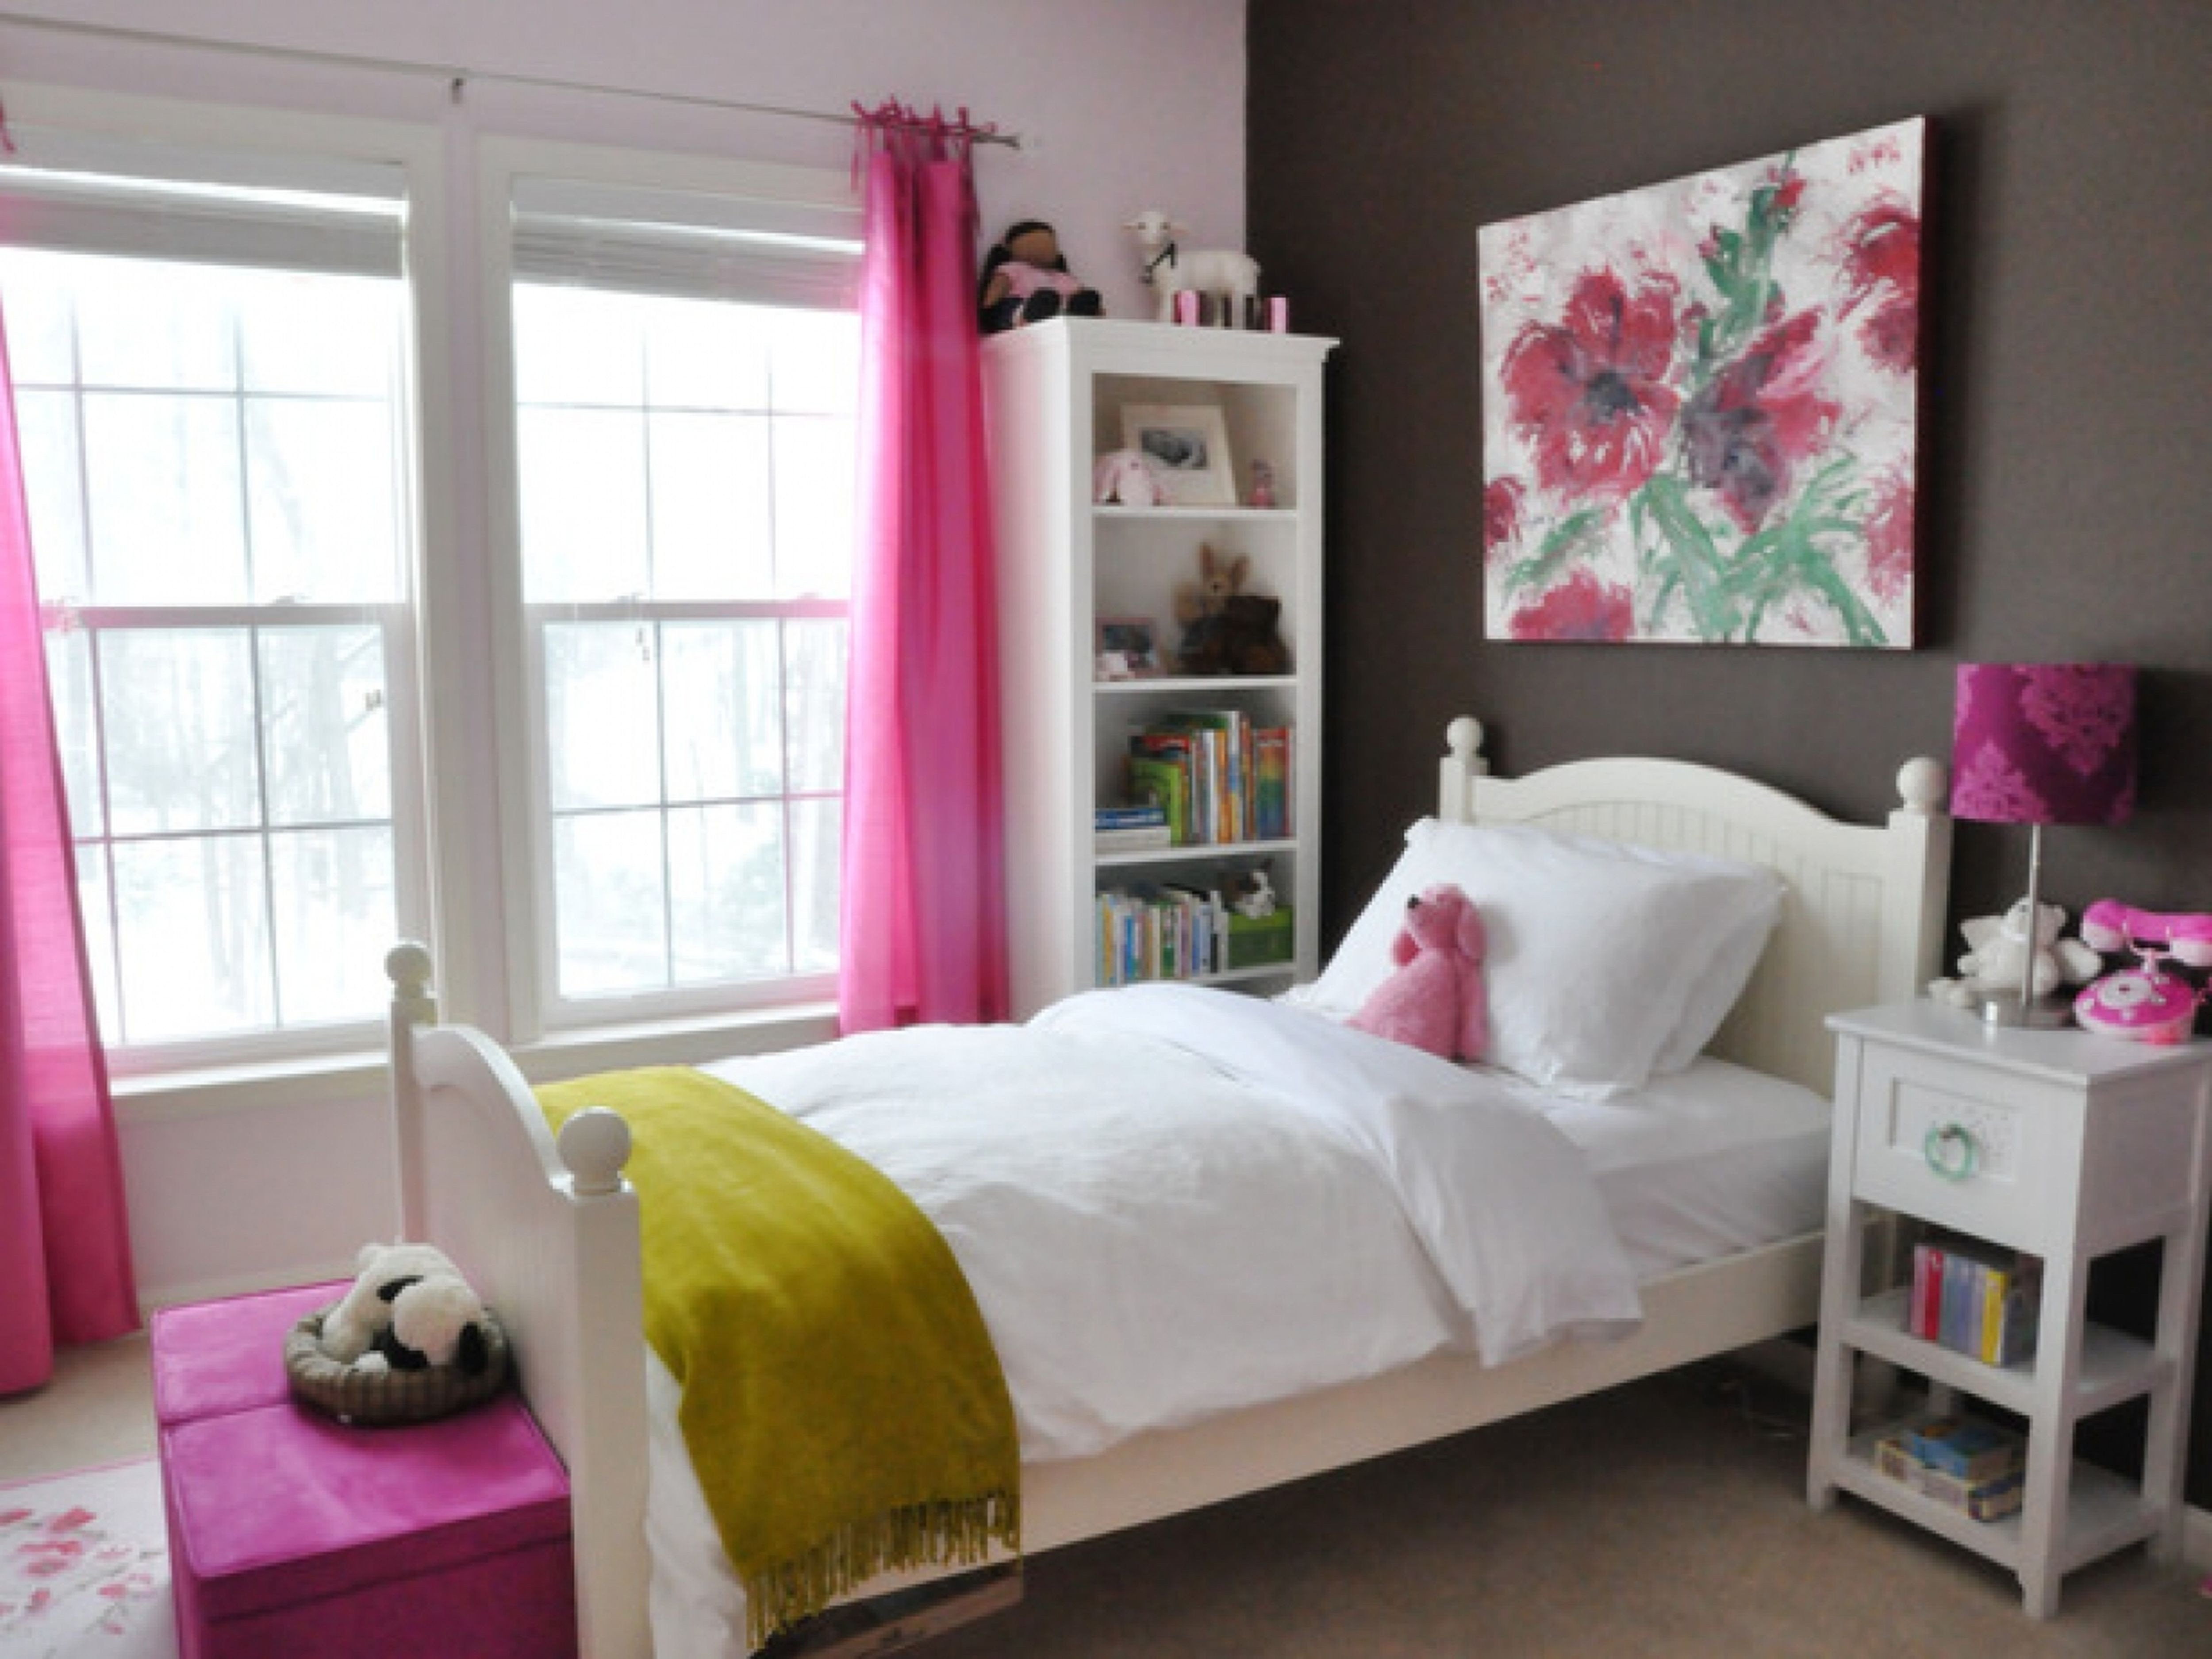 Room Decor Ideas for Girls Unique Cute Room Decor Ideas for Teenage Girls Traba Homes